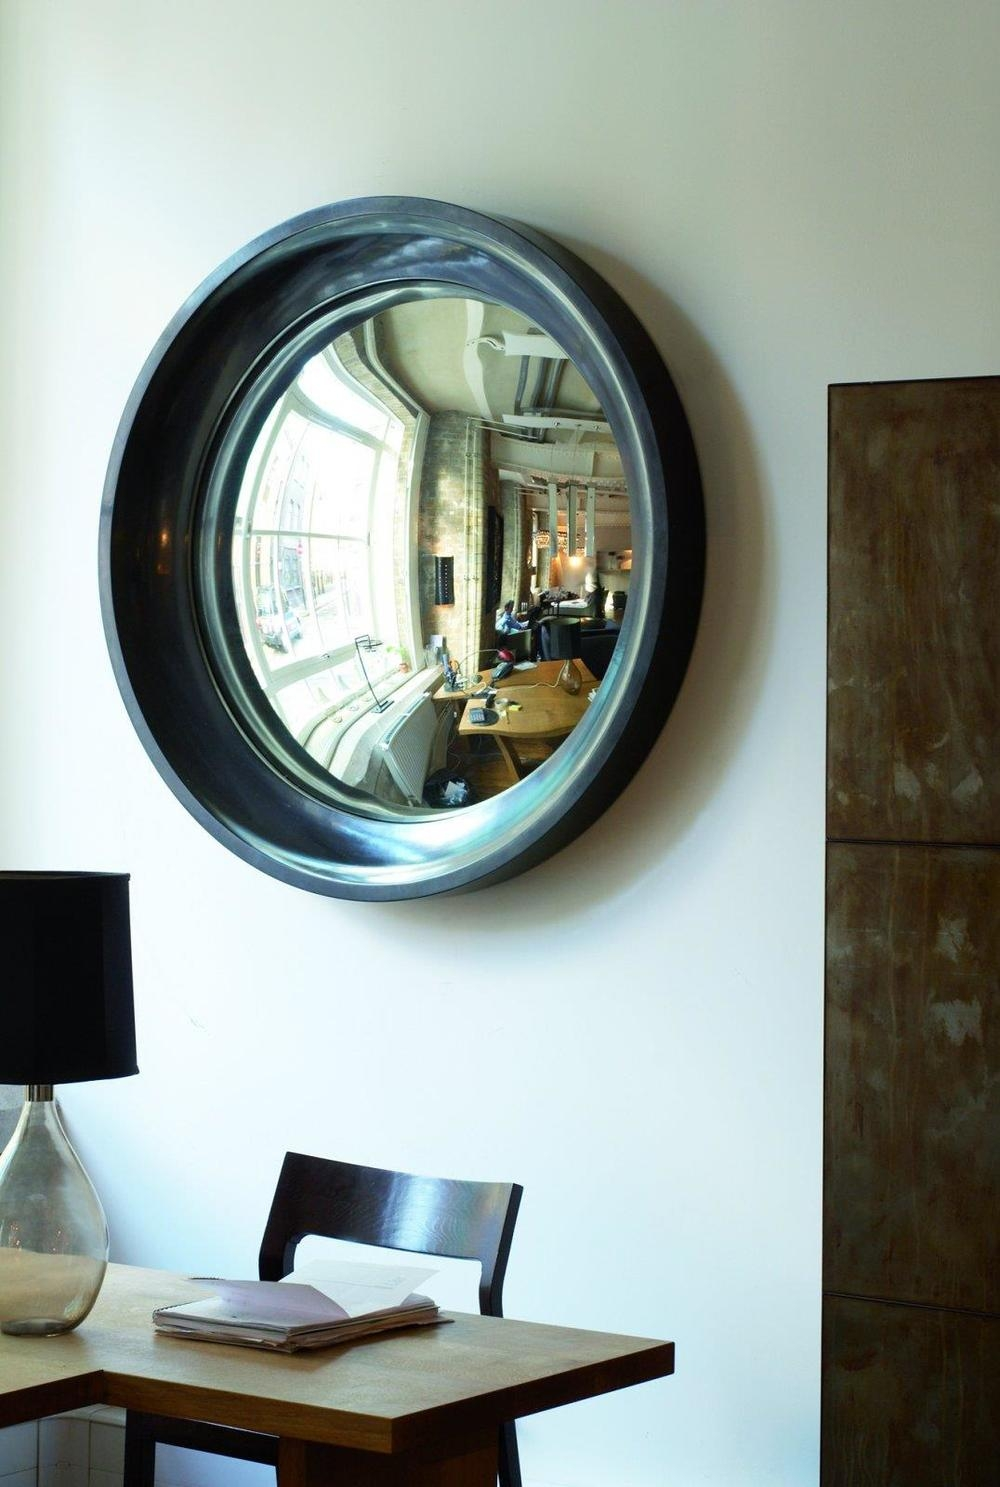 15 Interiors Turned Abstract Wall Art A Convex Mirror Designed For Convex Wall Mirrors (Image 1 of 15)